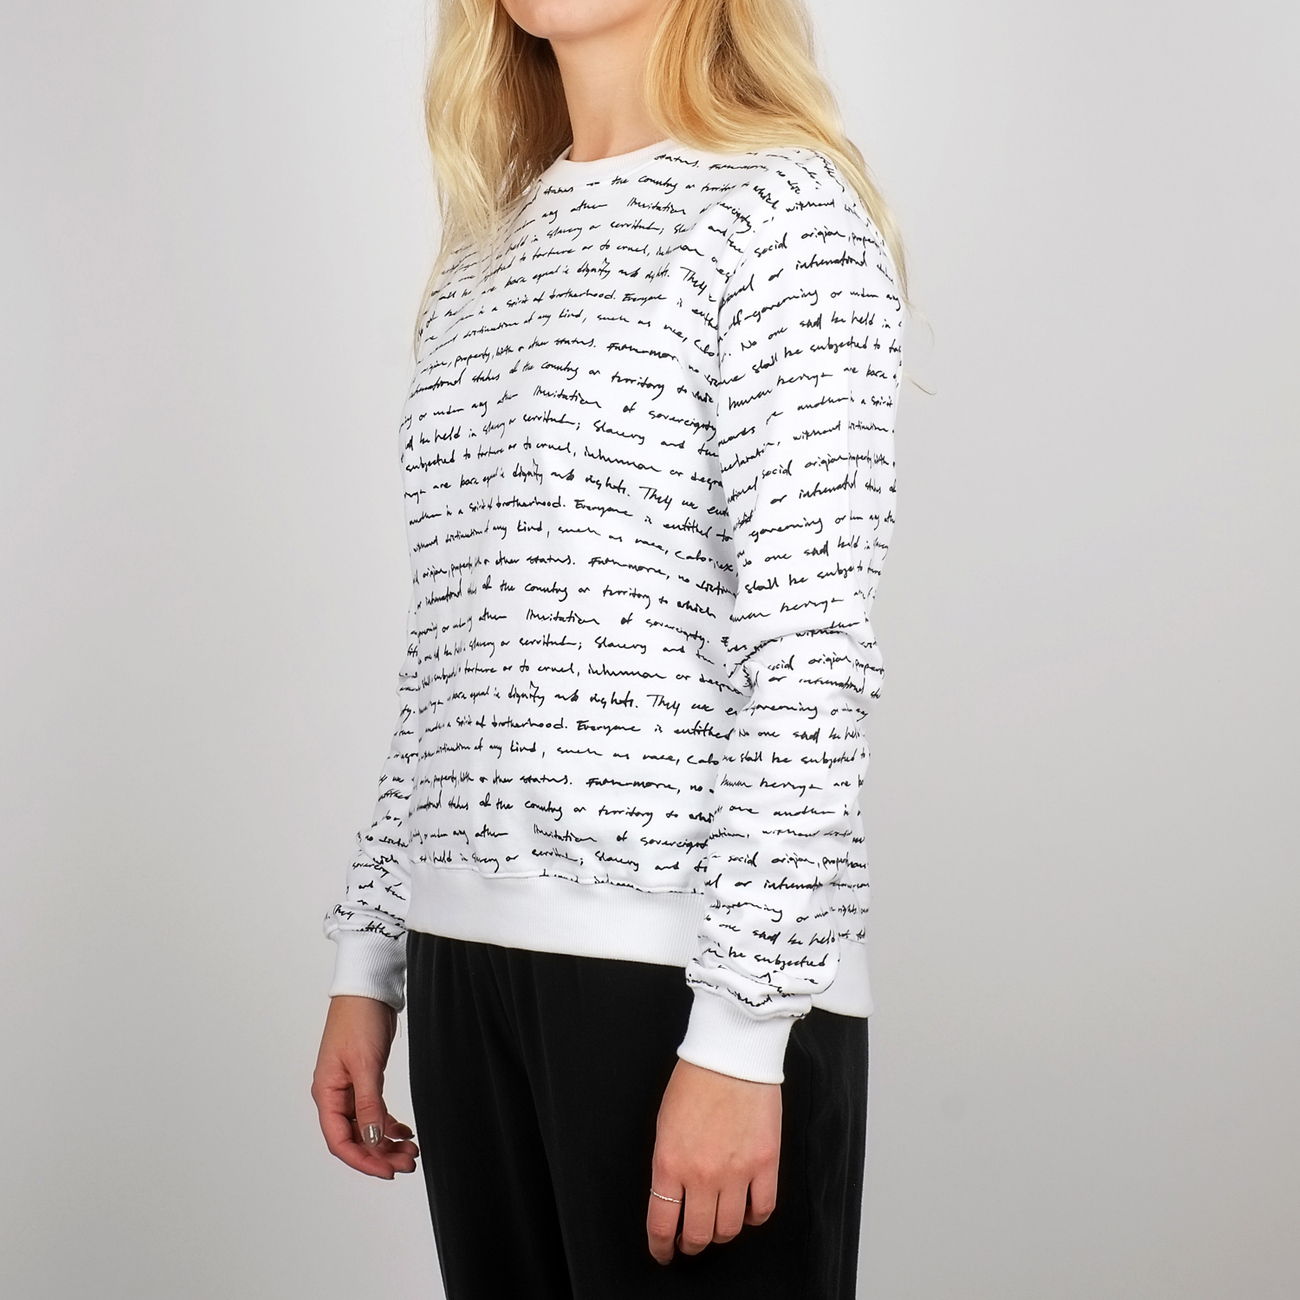 Sweatshirt Ystad Human Rights